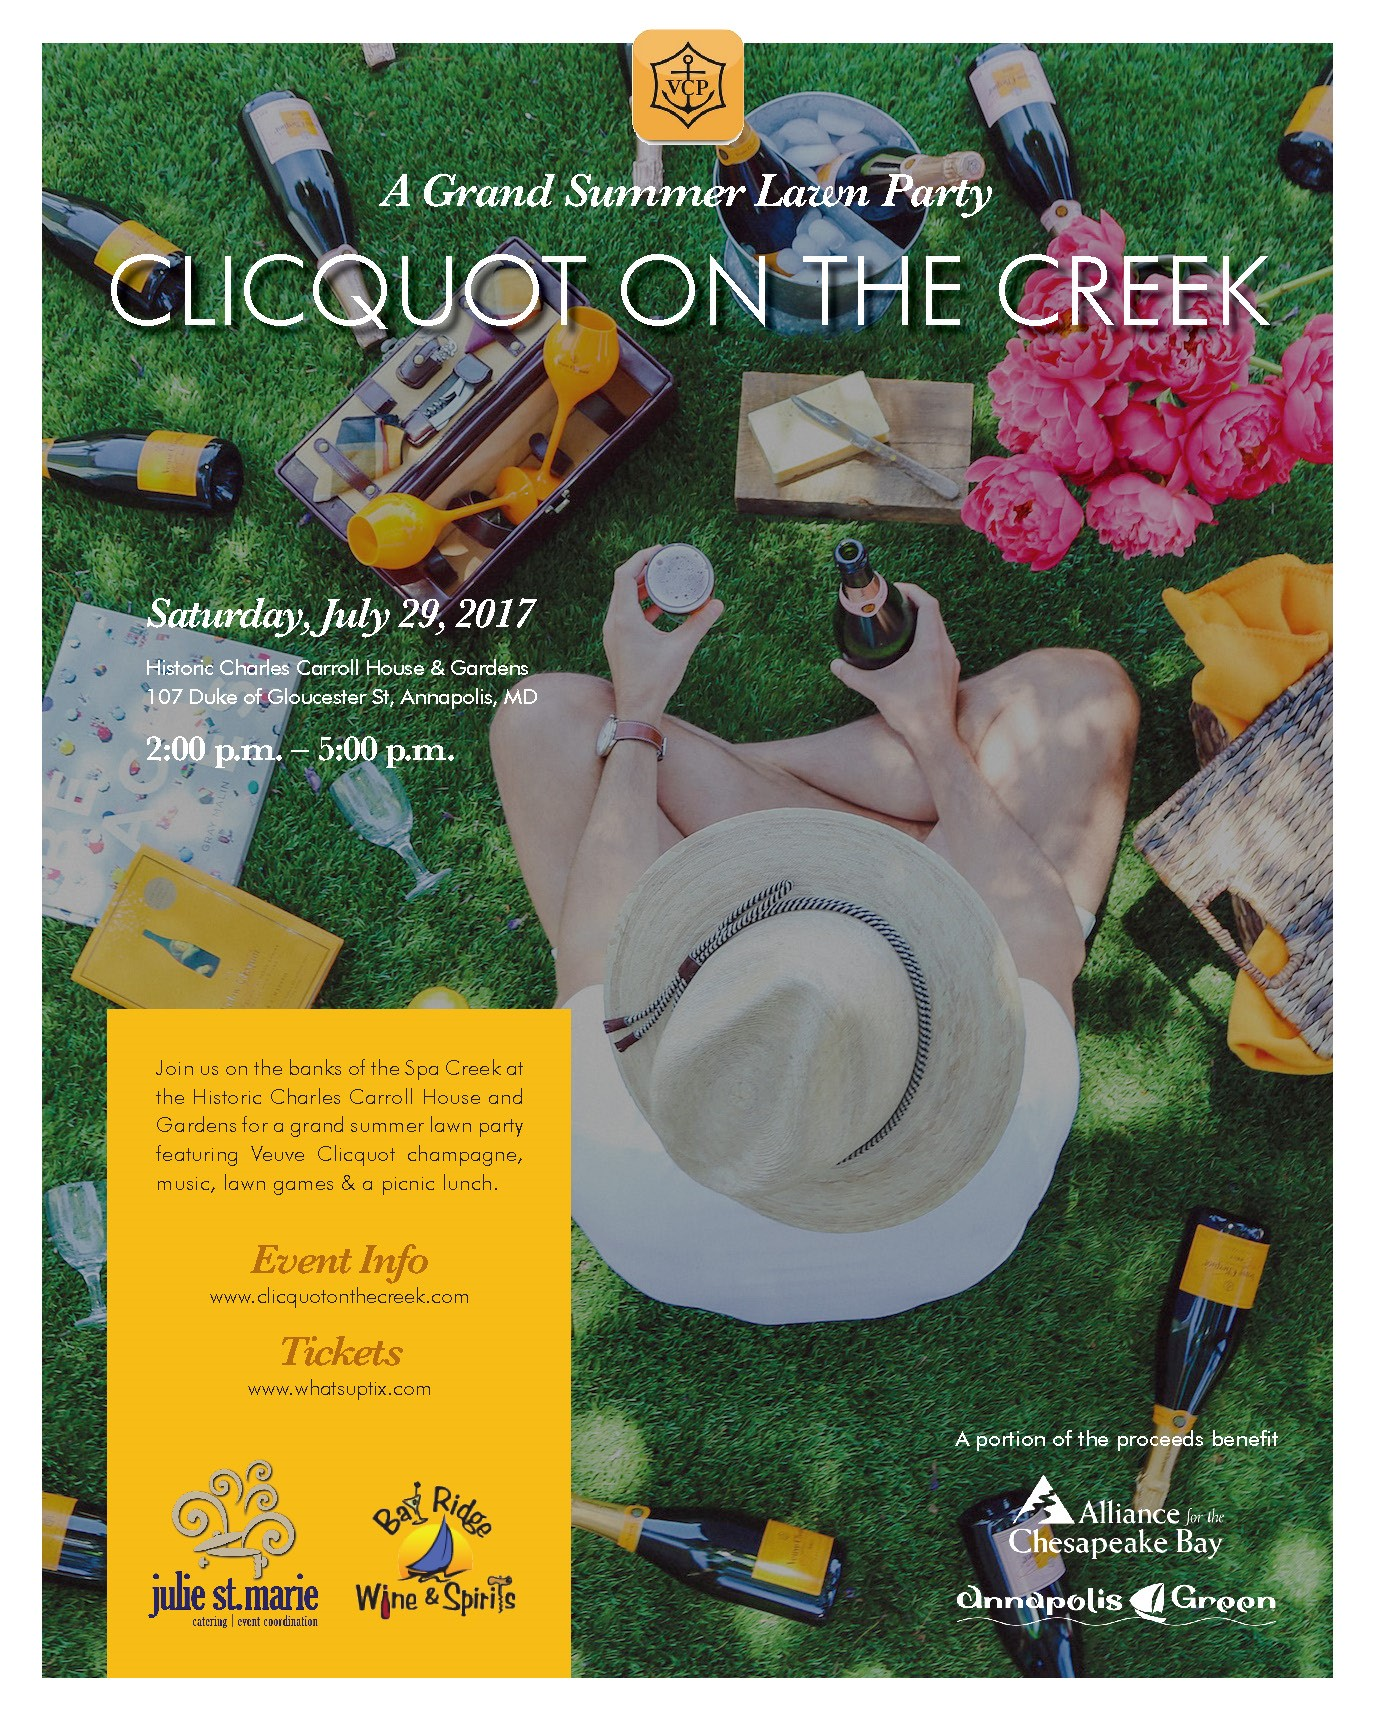 Get Your Tickets At Https://whatsuptix.com/events/clicquot On The Creek